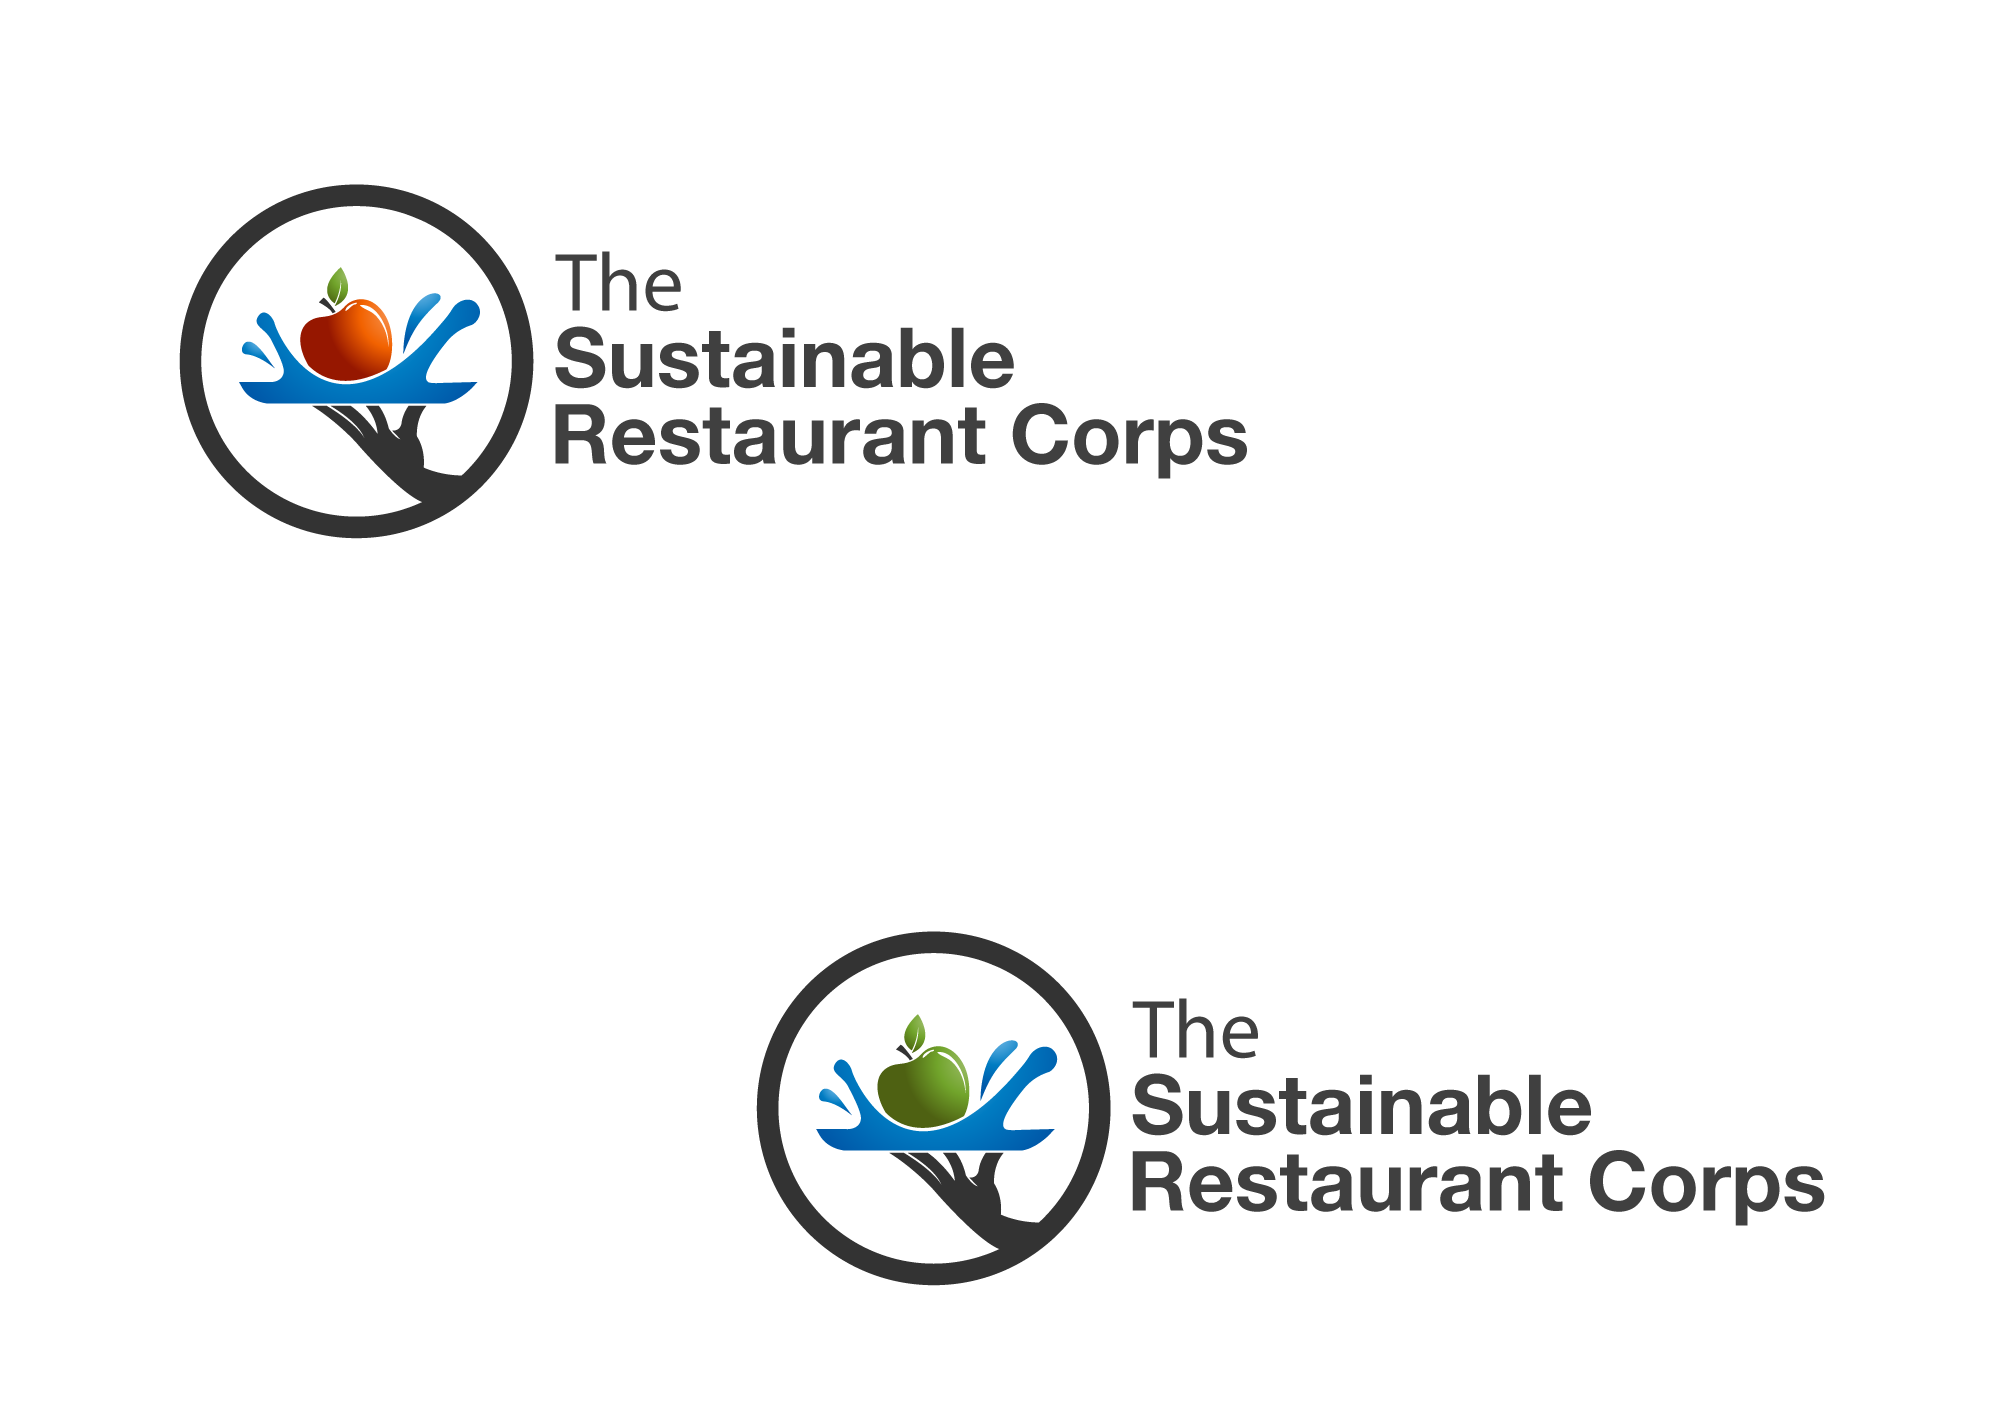 The Sustainable Restaurant Corps needs a new logo